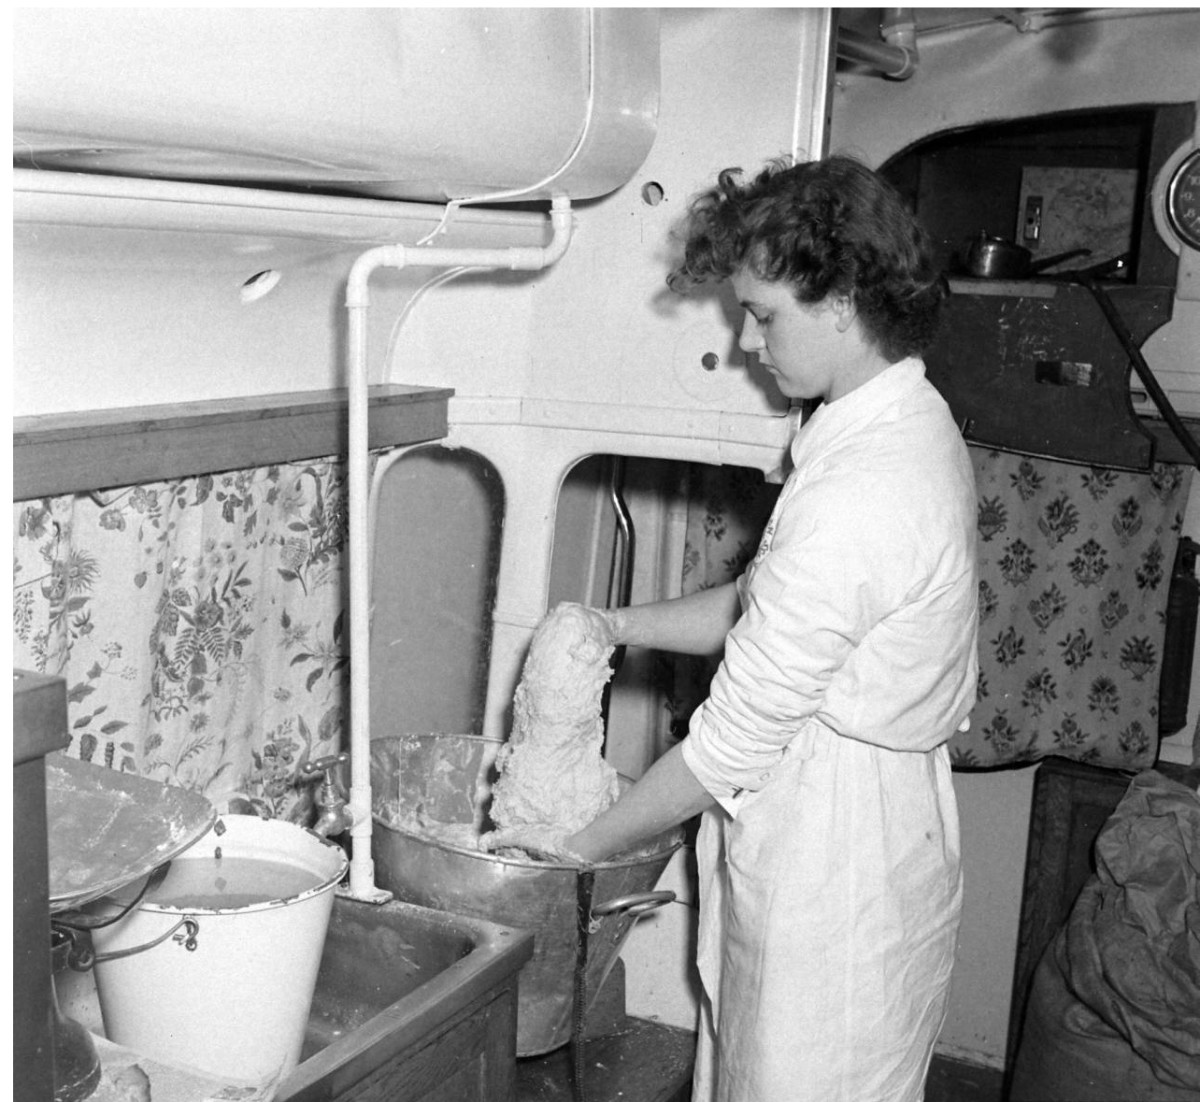 A Red Cross volunteer in a Clubmobile gets the dough ready to fry up another batch of doughnuts.